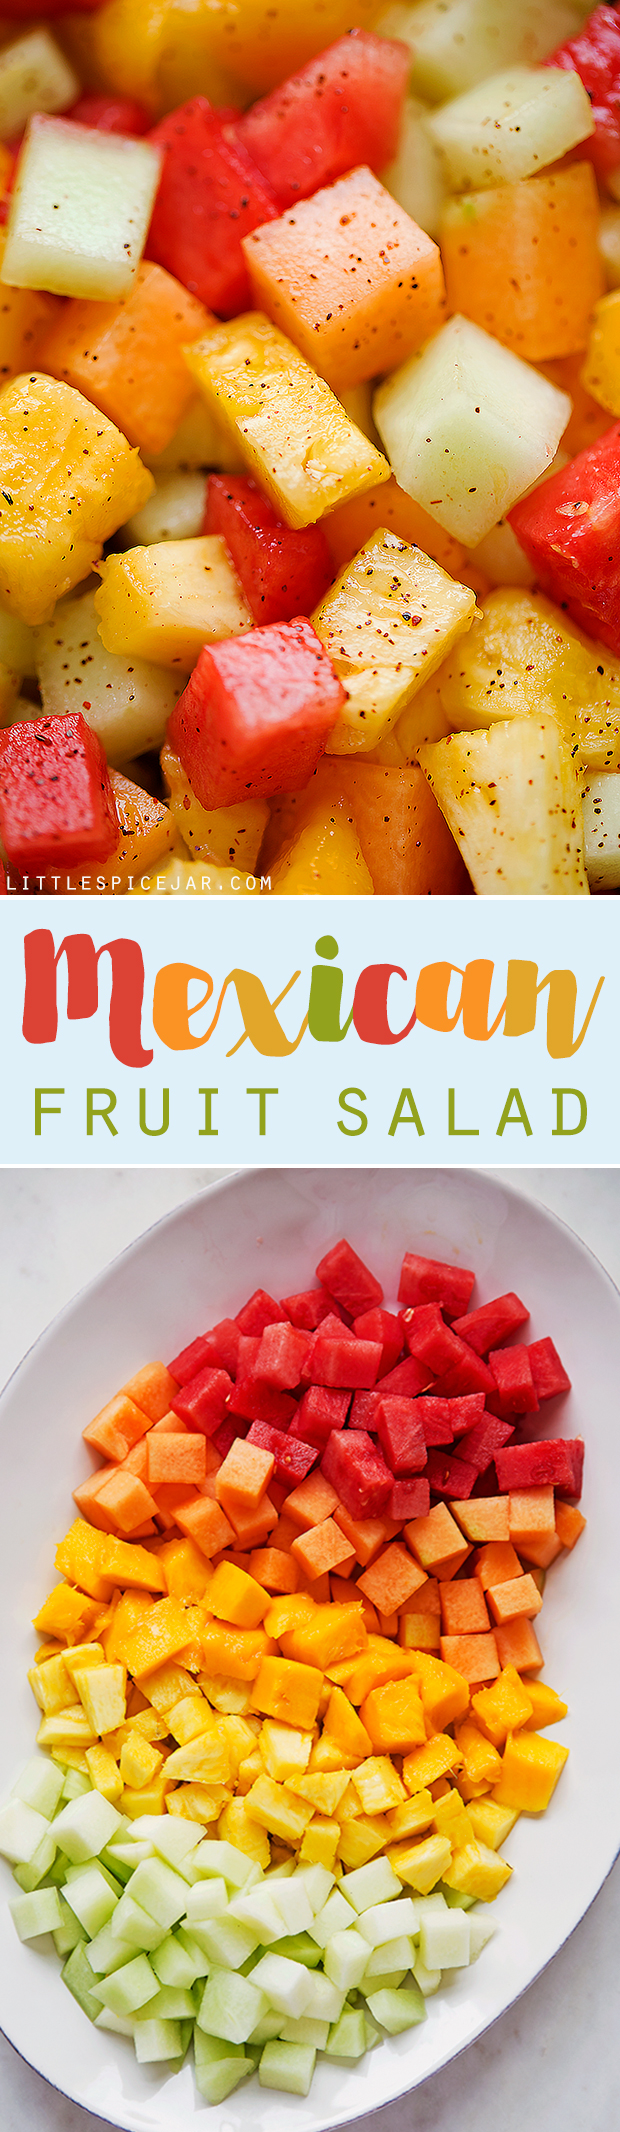 Mexican Fruit Salad - a fruit salad that combines watermelon, cantaloupe, honey dew, and mangoes that are tossed in a sweet spicy dressing! Perfect for summer! #mexicanfruit #fruitsalad #salad #mexicanfruitsalad   Littlespicejar.com